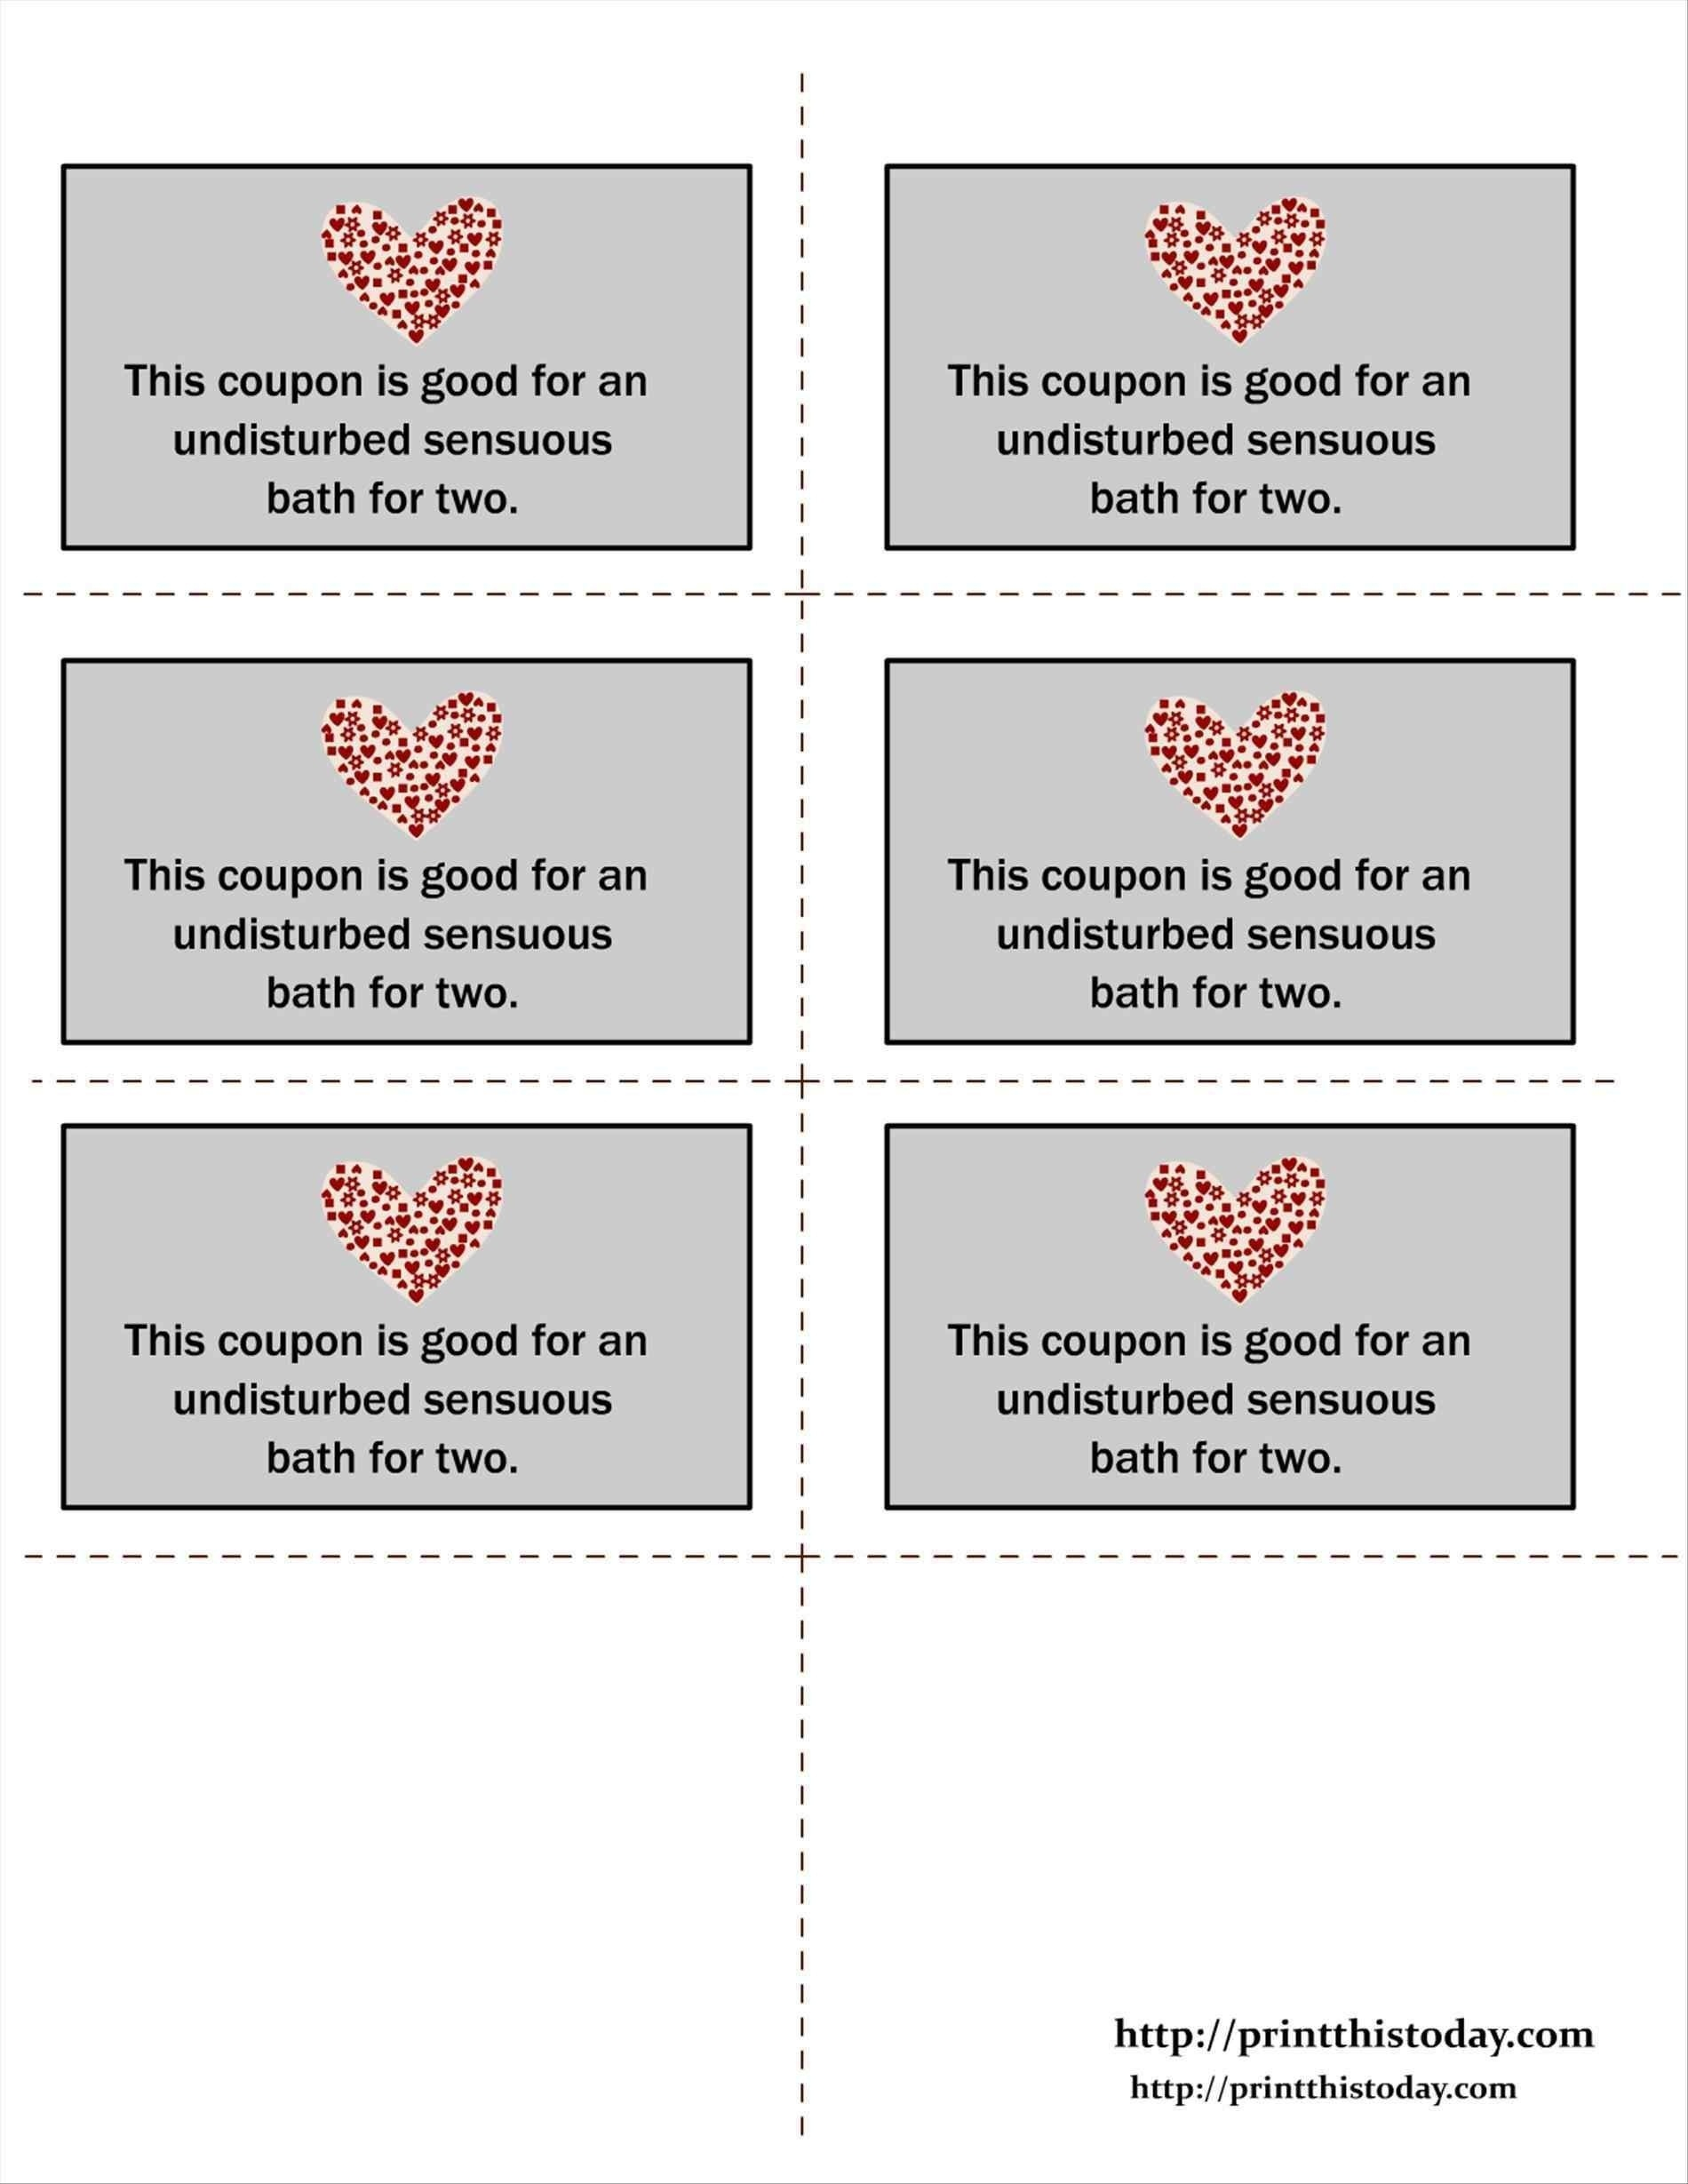 Blank Printable Love Coupons For Him | Chart And Printable World - Love Coupons For Him Printable Free